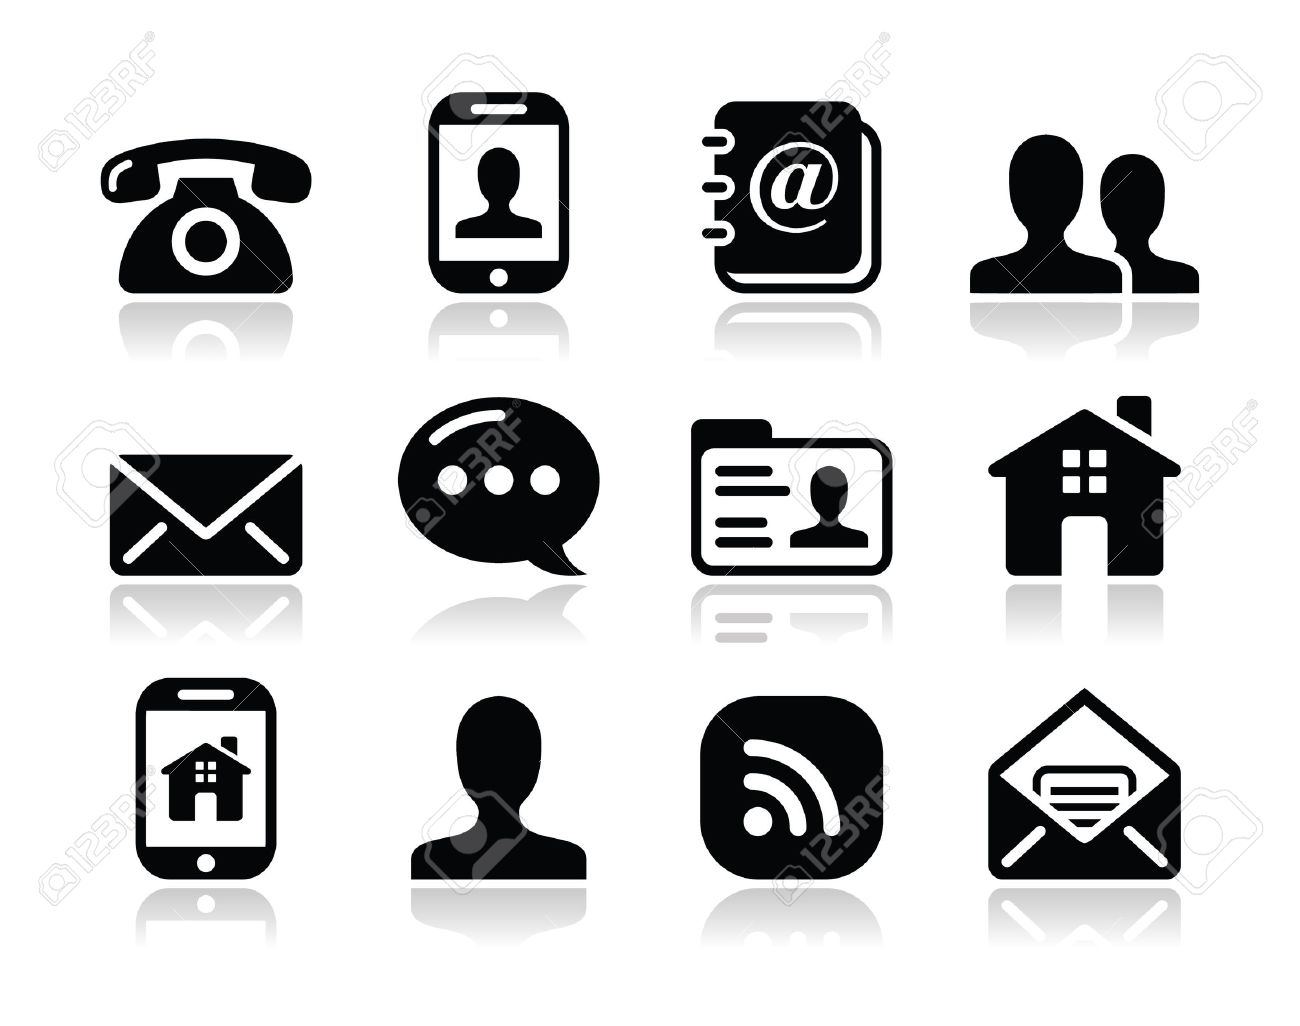 Contact black icons set - mobile, user, email, smartphone - 16492669